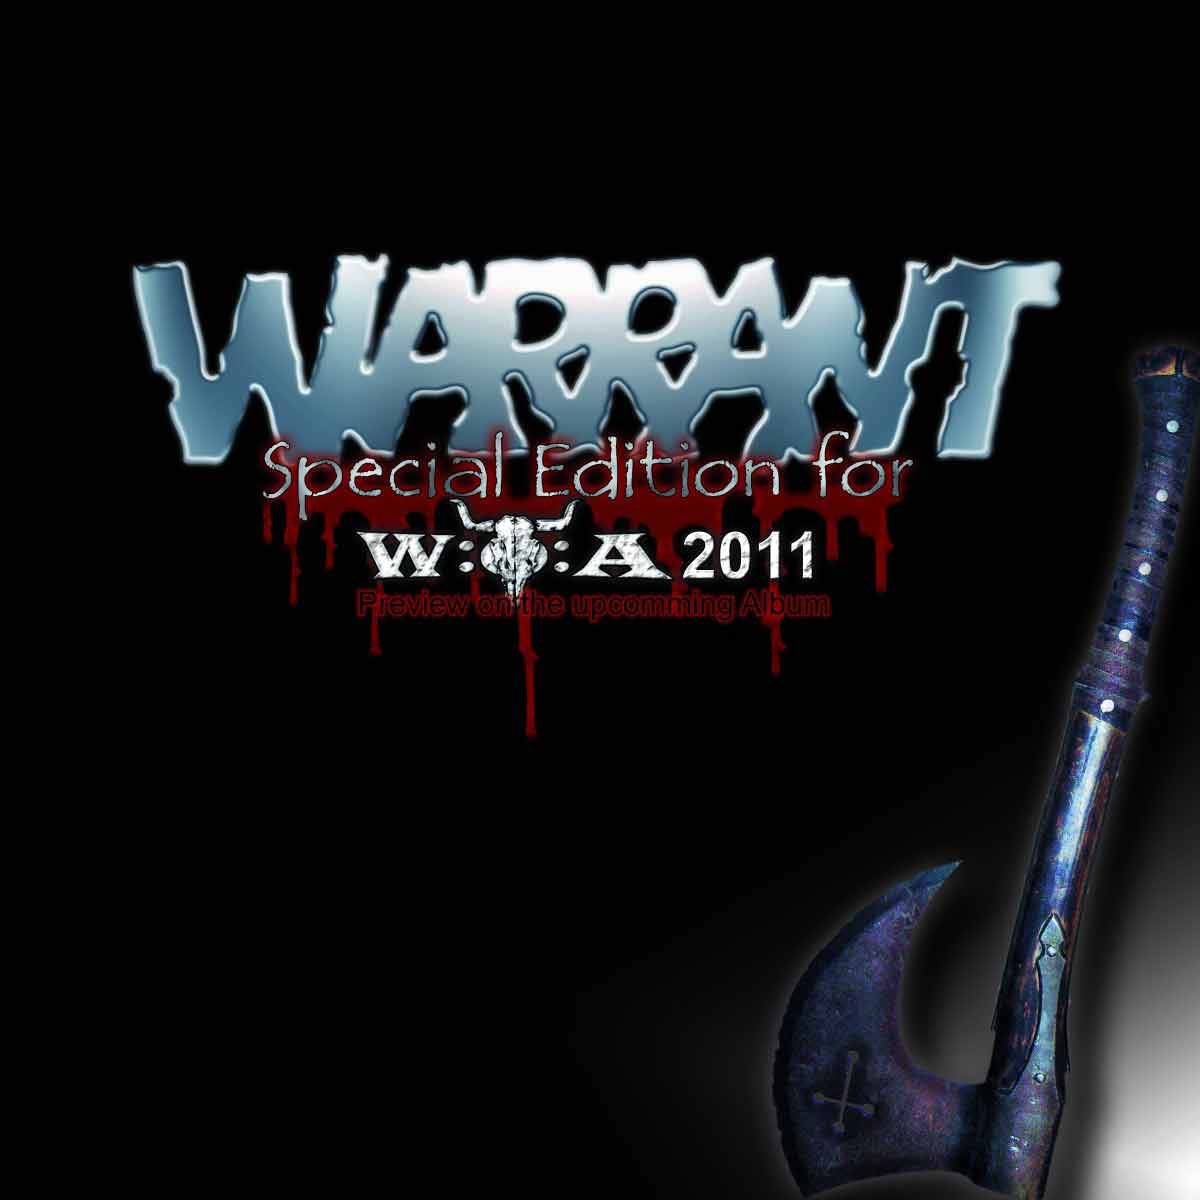 Warrant - Special Edition for W.O.A. 2011